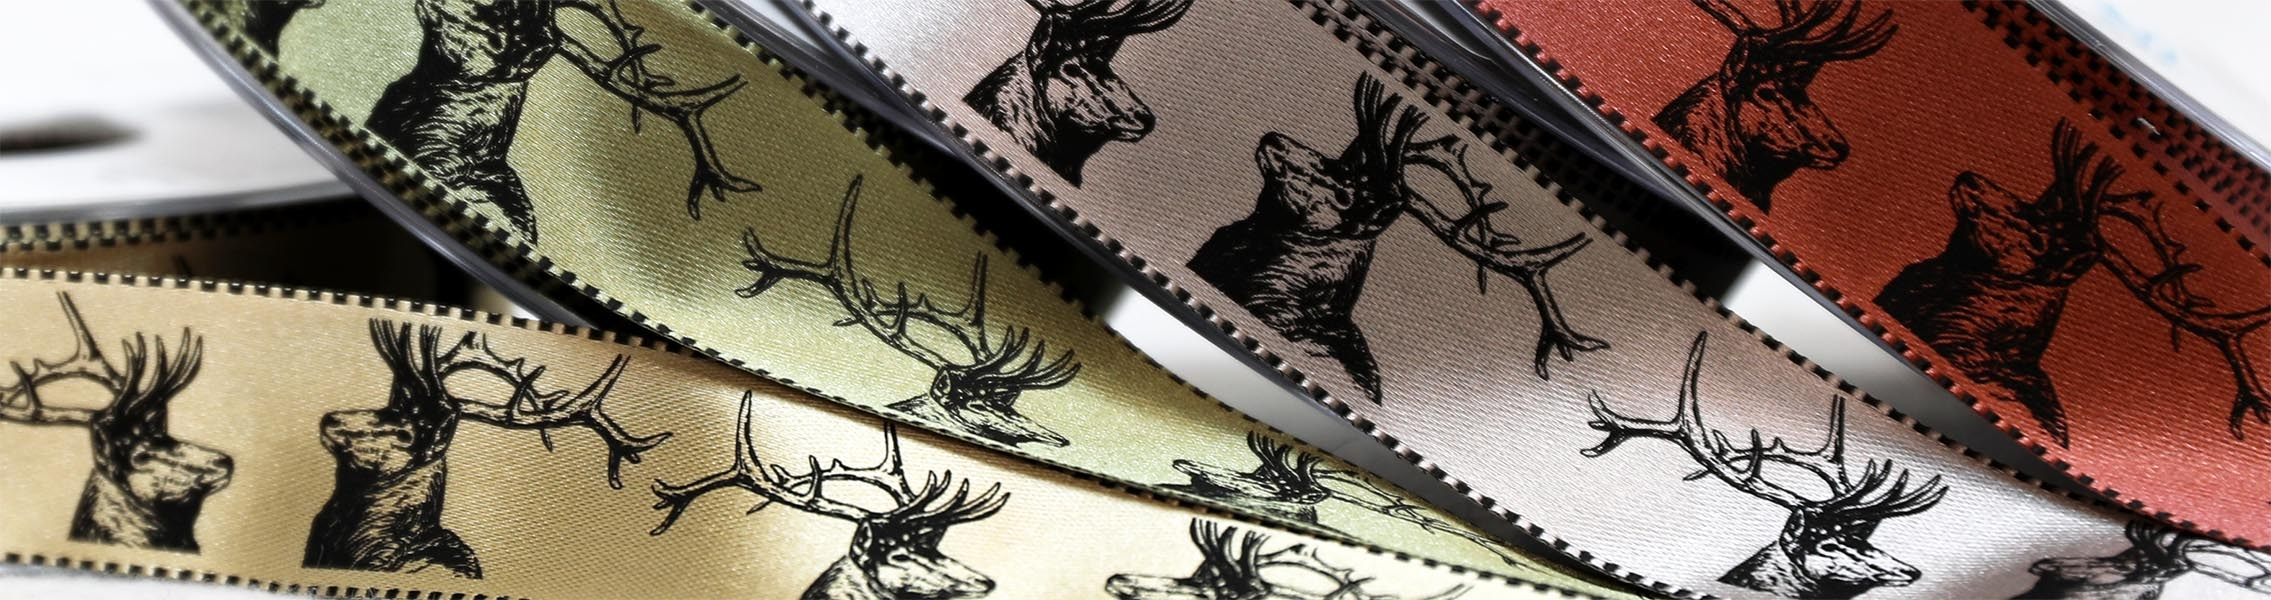 Stag & Deer Ribbons